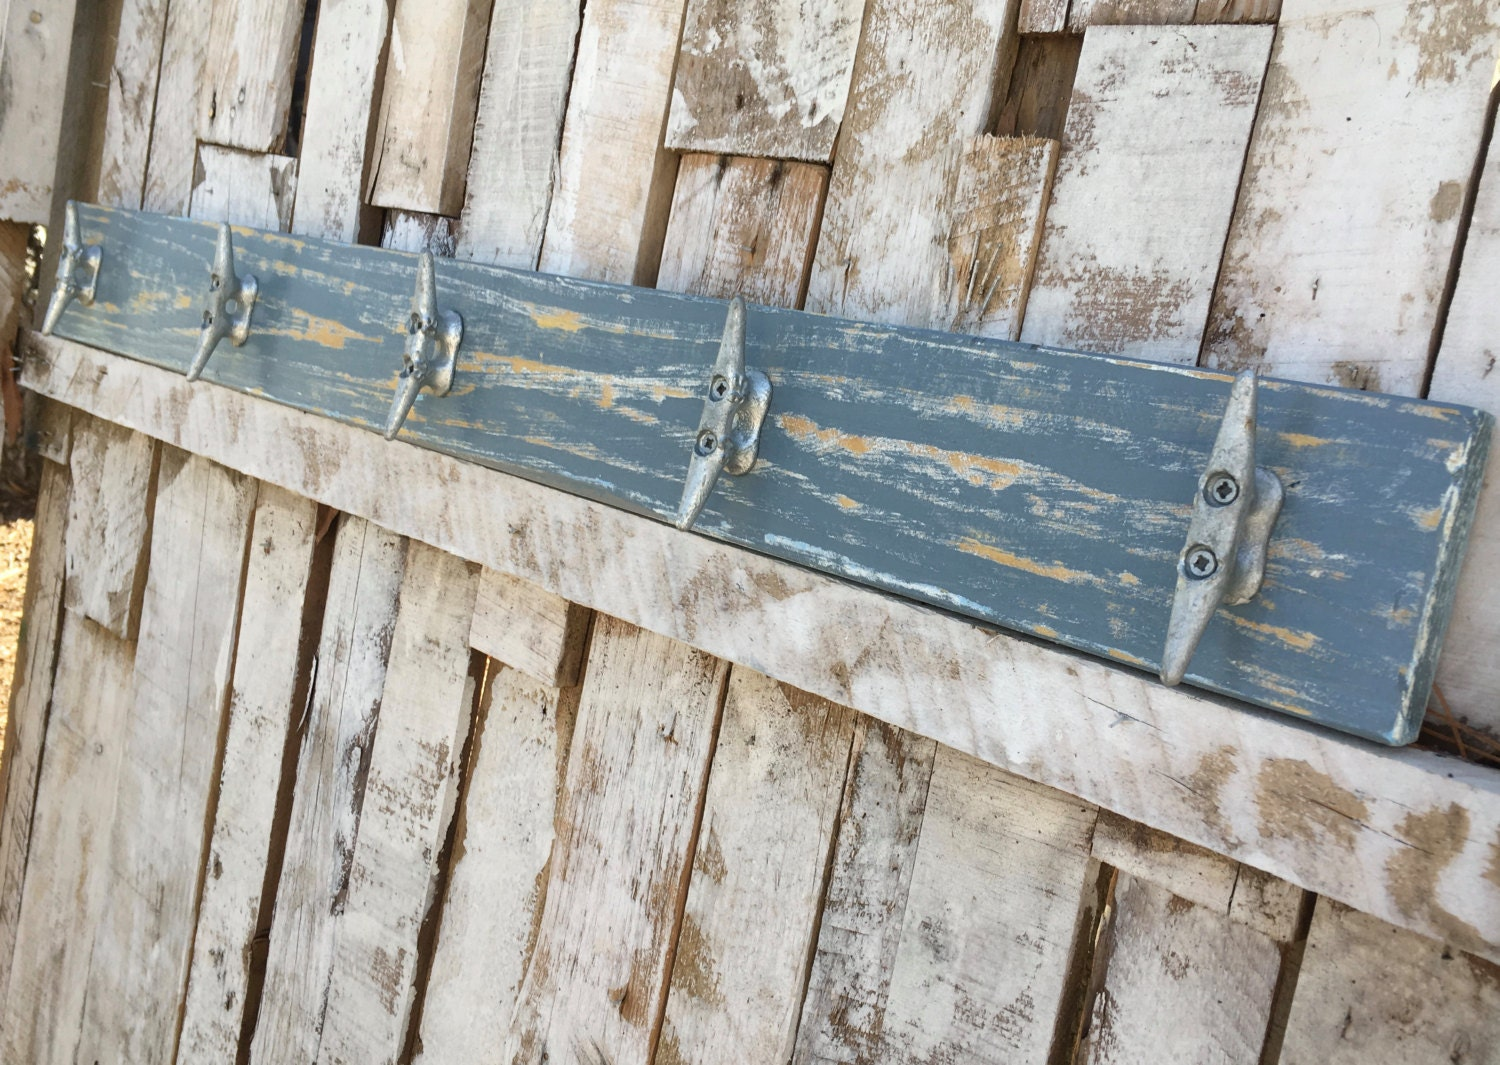 Nautical Distressed Medium Blue Boat Cleat Coat Rack, Towel Rack, Book Bag  Rack, Hat Rack, Or Key Rack With Boat Cleats And Reclaimed Wood Part 64